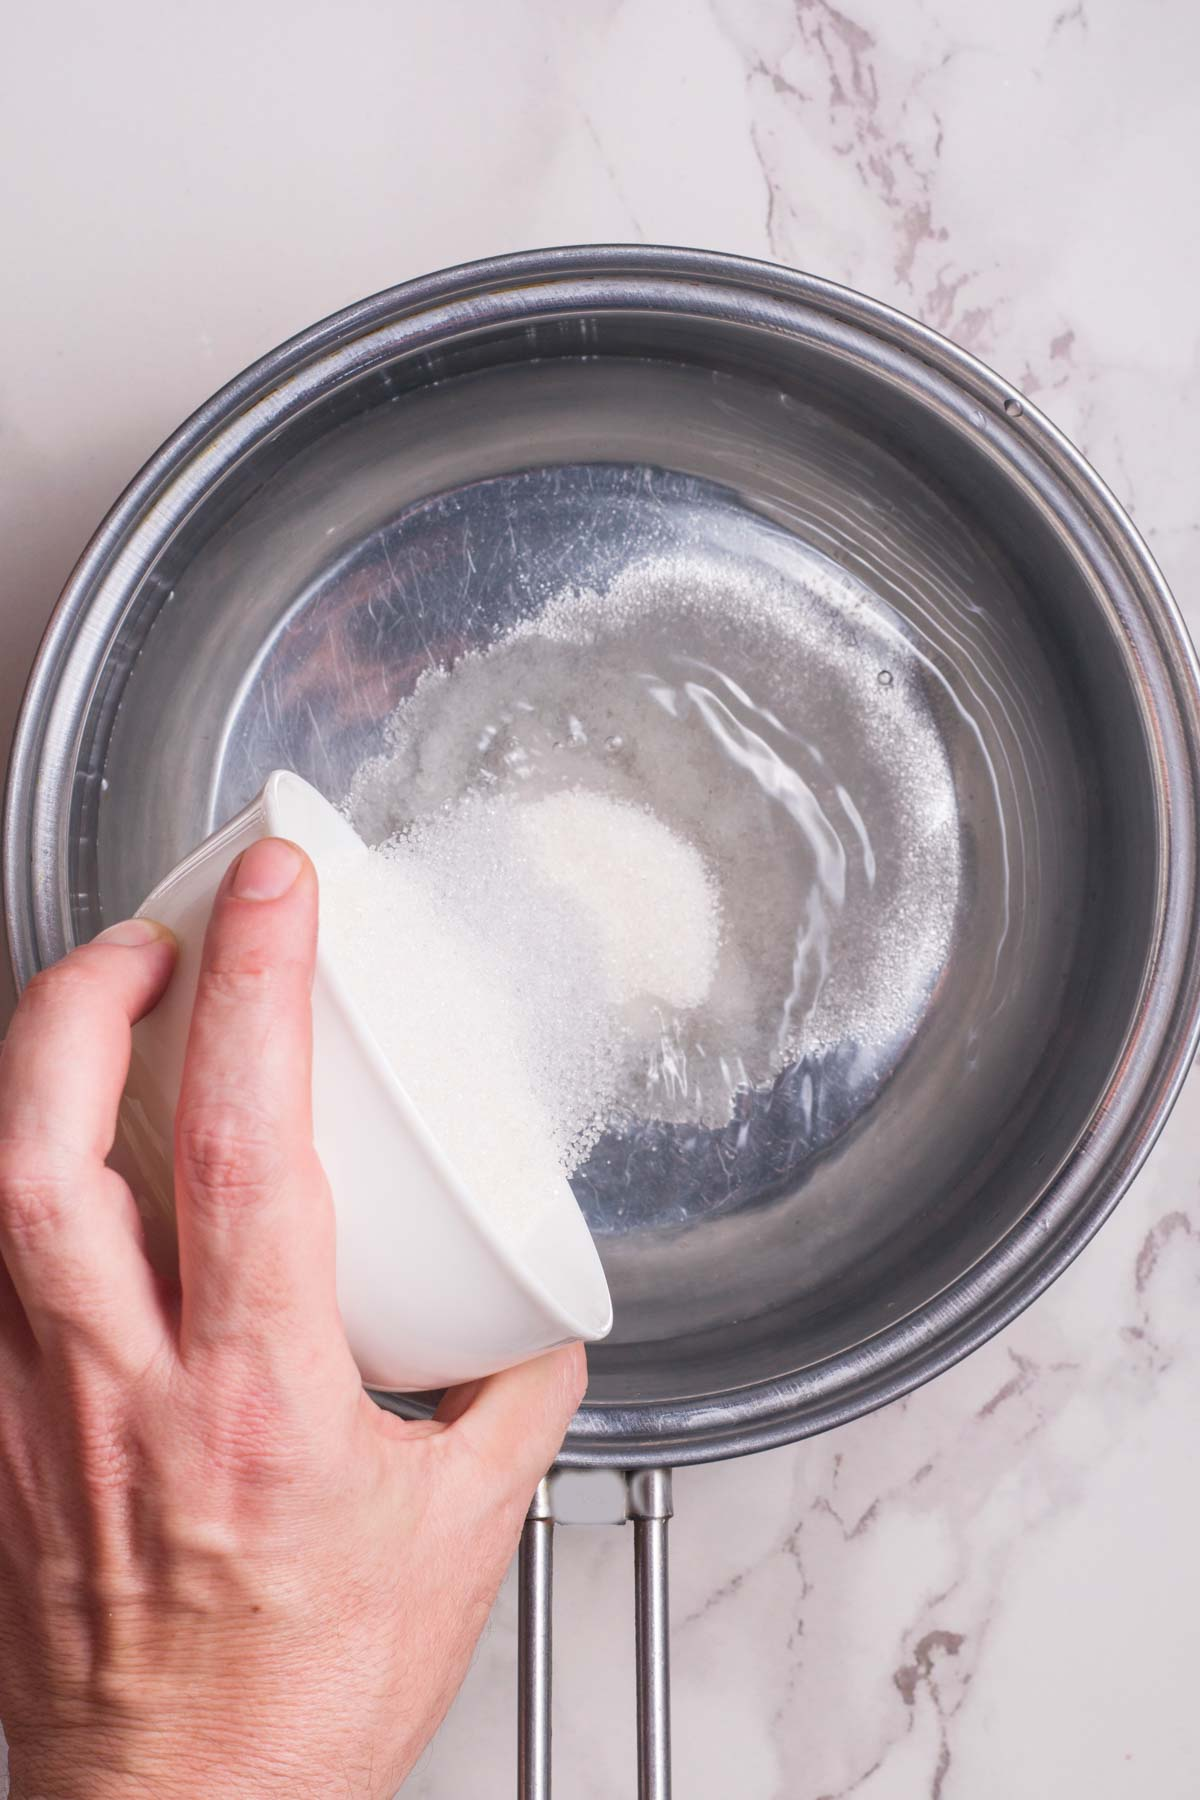 hand pouring sugar in a pan of water